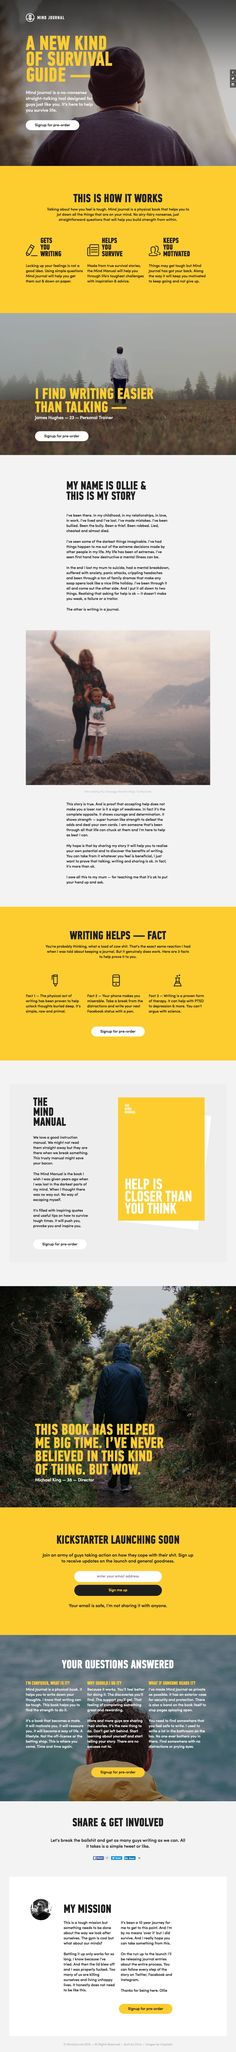 One Page redesign for 'Mind Journal' - an upcoming book by Ollie Aplin to help with writers block. The redesign features bigger, clearer typography and better imagery. Great to see a Single Page website promoting an idea before the actual Kickstarter campaigns starts.